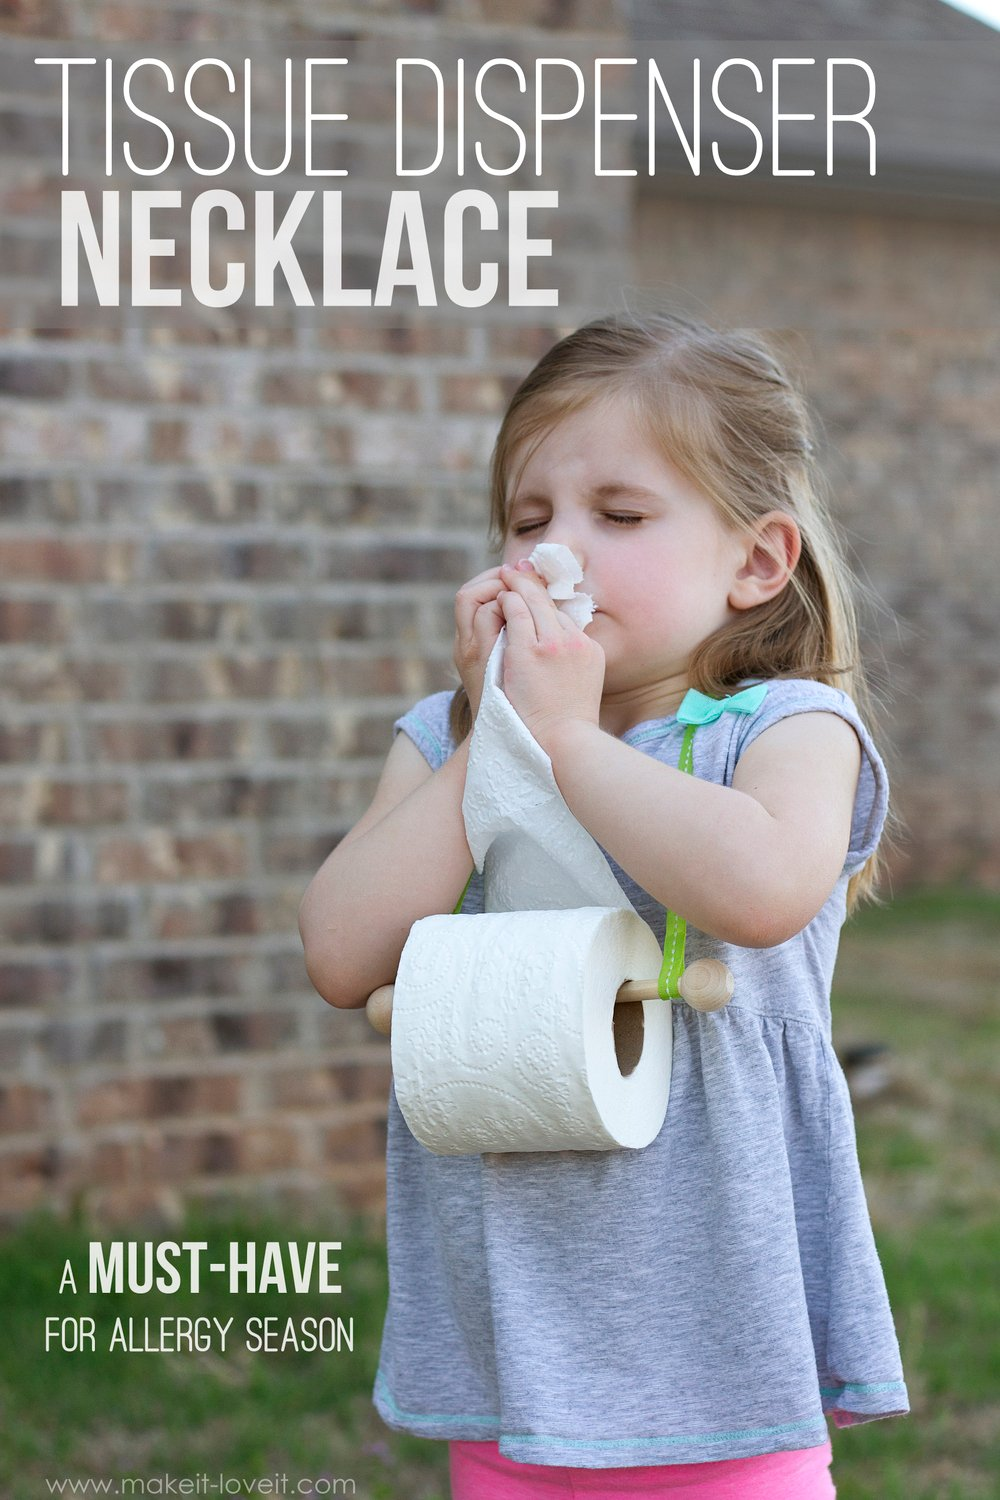 Tissue dispenser necklace…perfect for allergy season! (update: april fools')